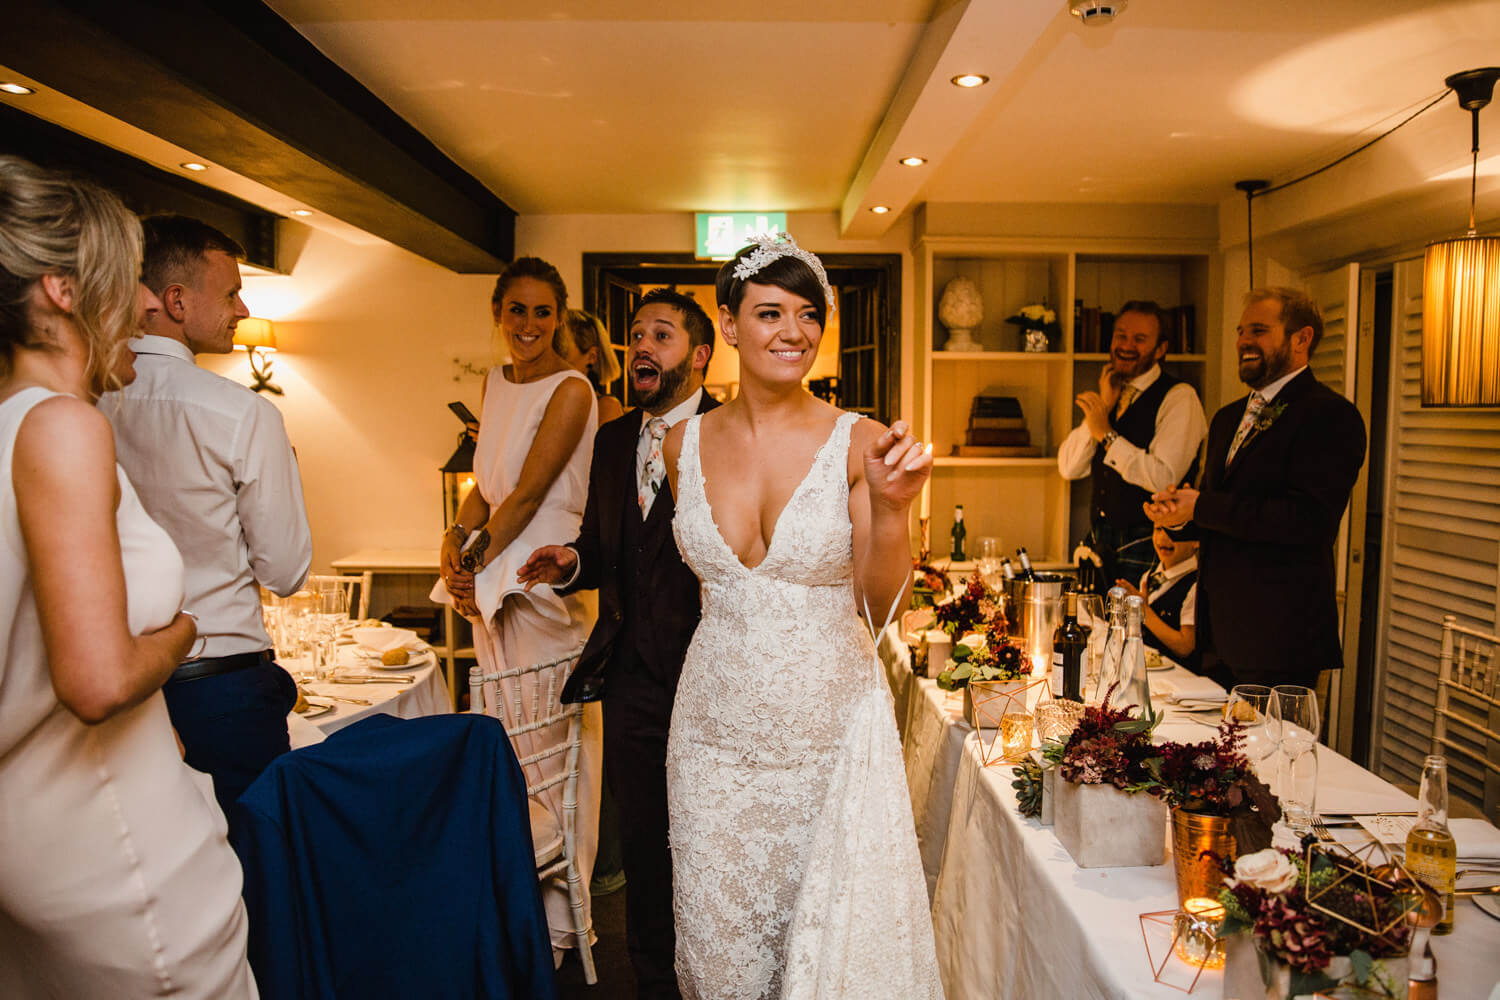 bride and groom enter the room after nuptials to be seated at top table